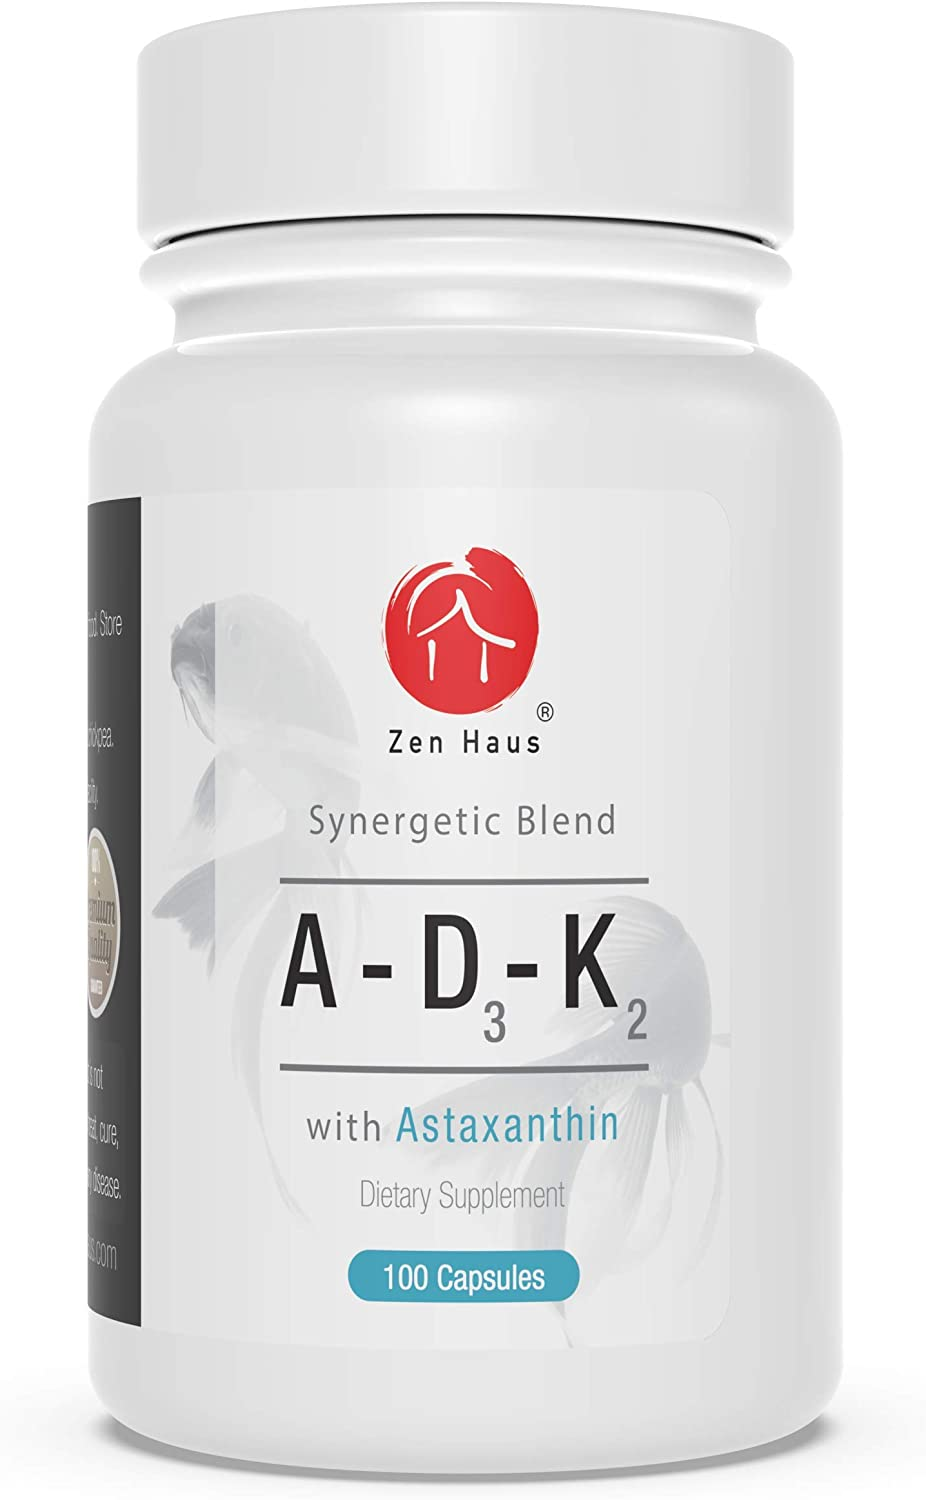 Zen Haus Vitamin ADK Supplement with Vitamins A, D3 and K2 (MK-7 Non-Soy) with Astaxanthin - for Vision, Strong Bones and Teeth, and Immune System Support - D3 Complex (ADK Vitamin) with Antioxidants